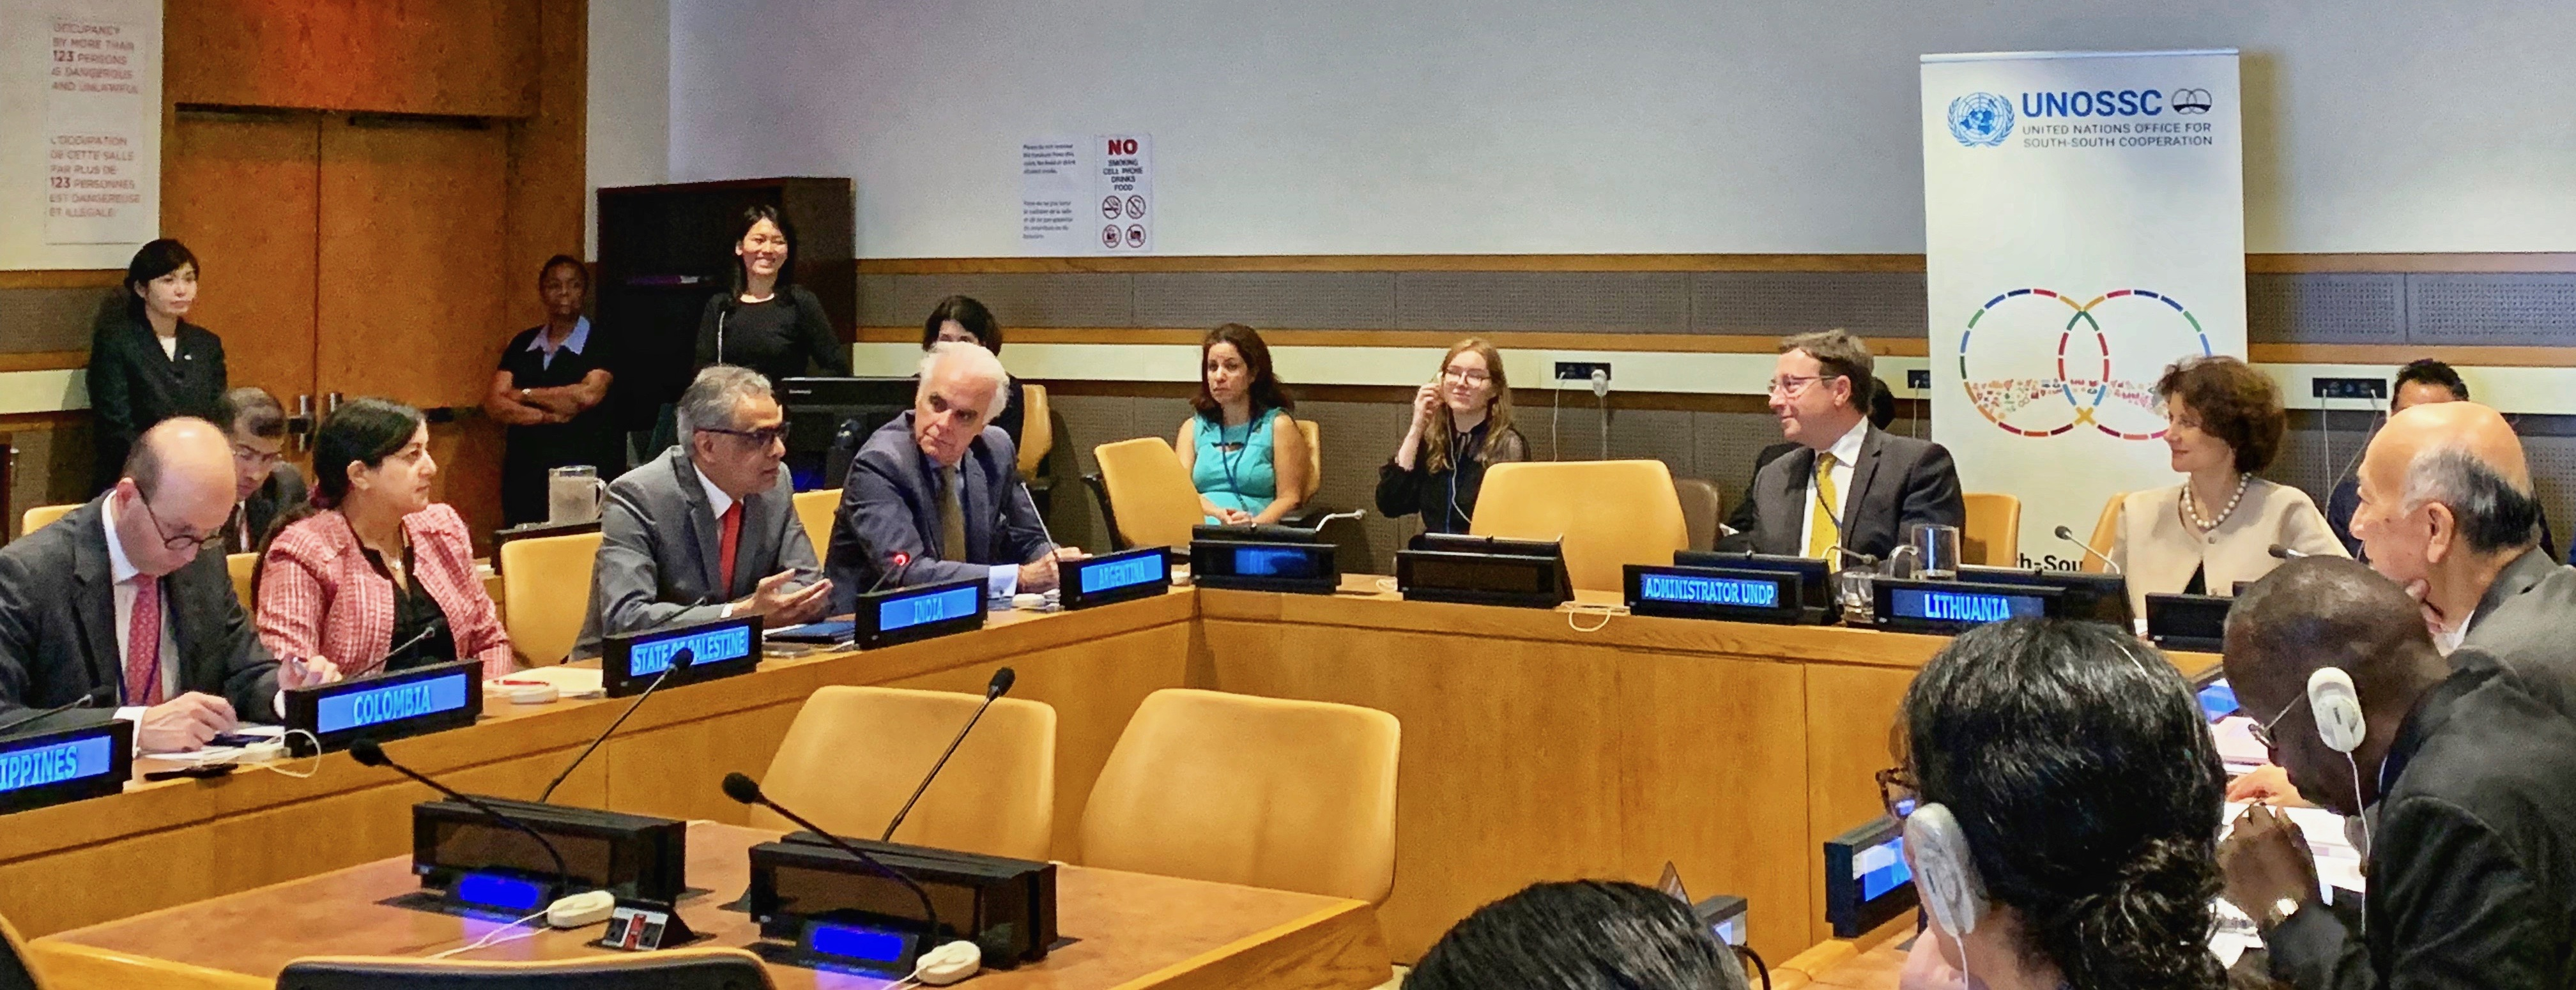 Ambassador Syed Akbaruddin, Permanent Representative at the commemoration of the <br>UN Day for South-South Cooperation